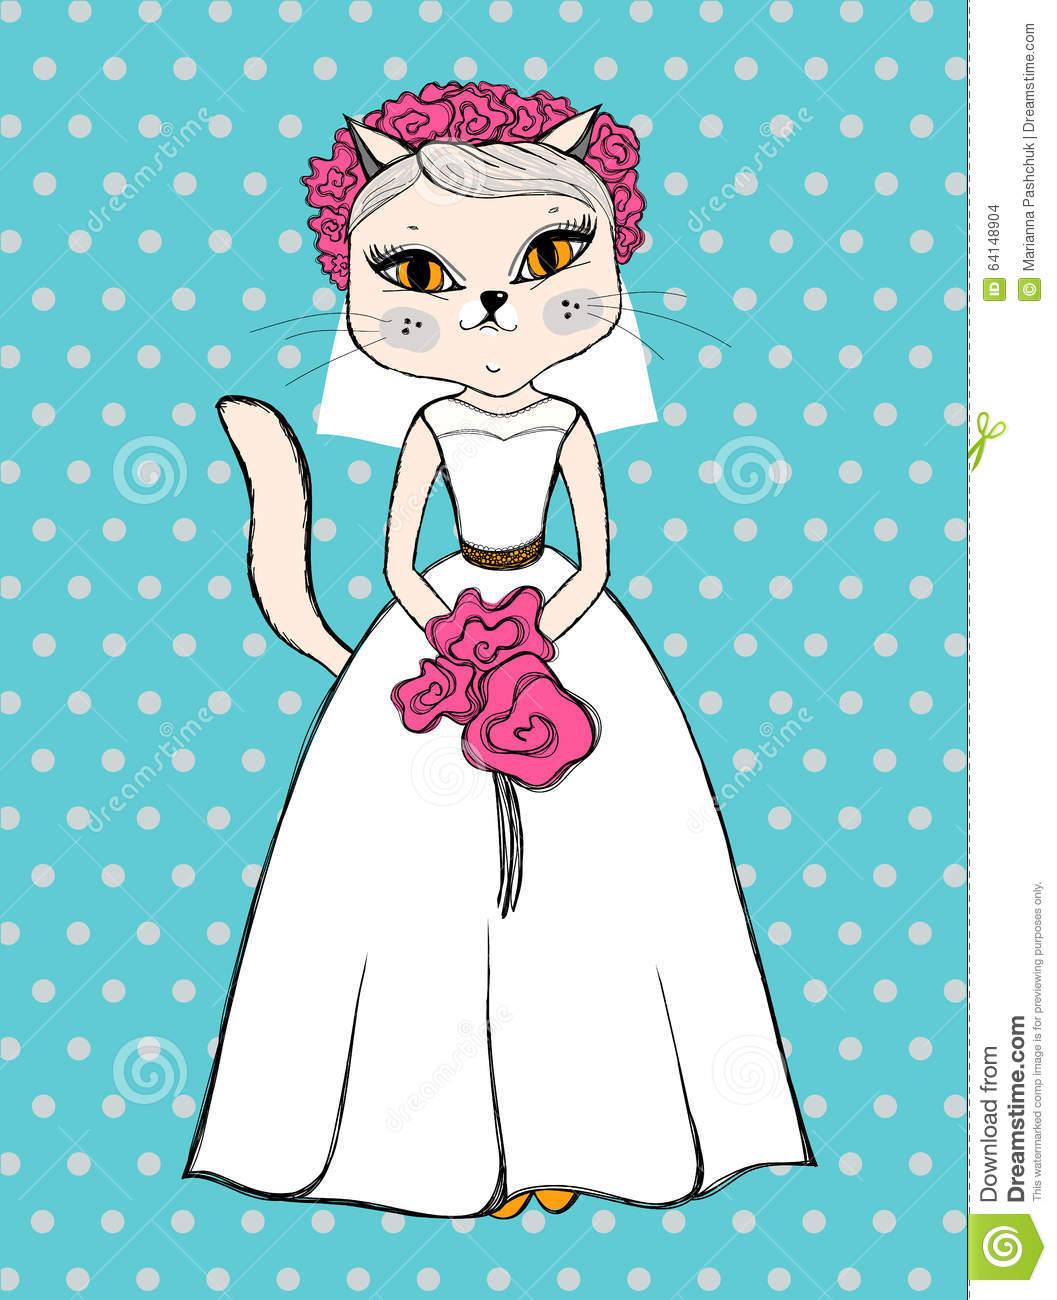 Cats Groom Bride Stock Illustrations – 103 Cats Groom Bride Stock  Illustrations, Vectors & Clipart - Dreamstime